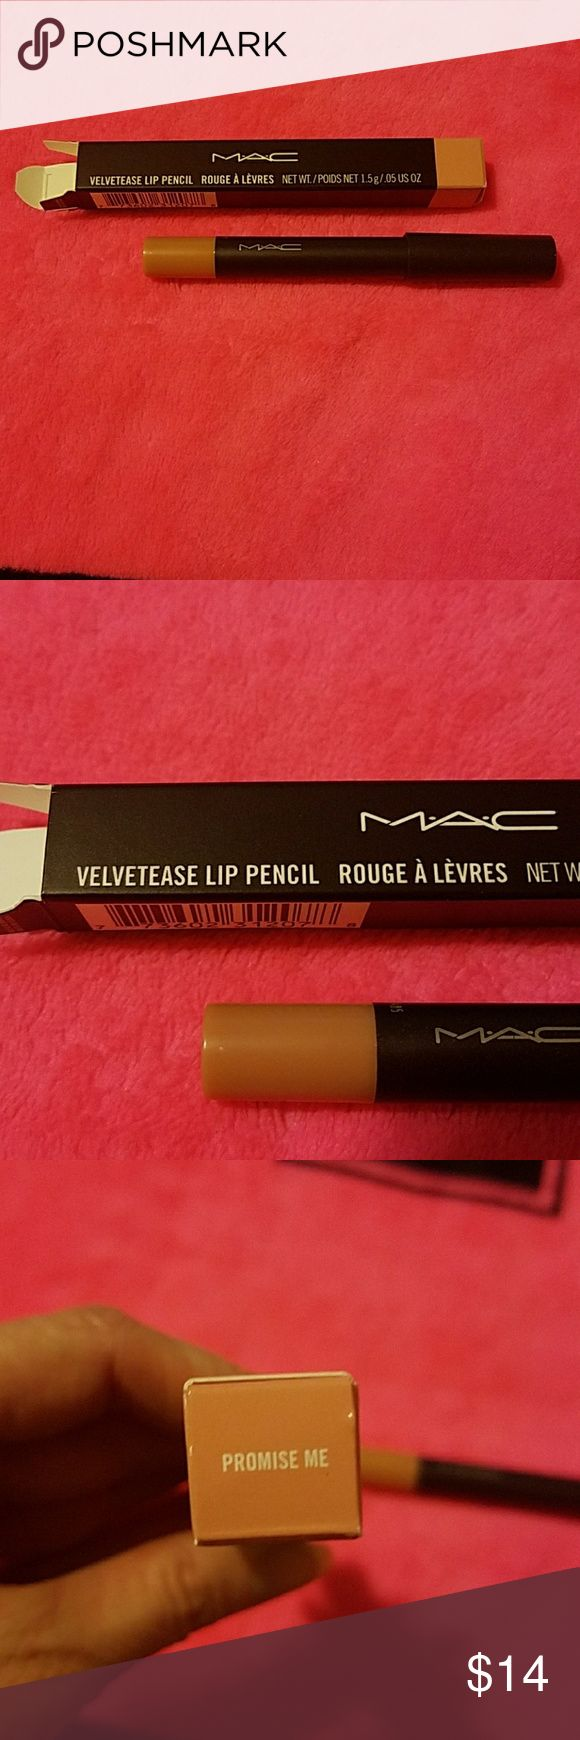 MAC  Velvetease Lip Pencil Gorgeous Nude Lip Pencil, Turns At Bottom to Self Sharpen, May Be Used Alone or With A gloss for more Shine, Last Pic is A Stock Photo From Online, Never Used or Swatched, Purchased Directly From MAC Online  Firm Unless Bundled MAC Cosmetics Makeup Lipstick